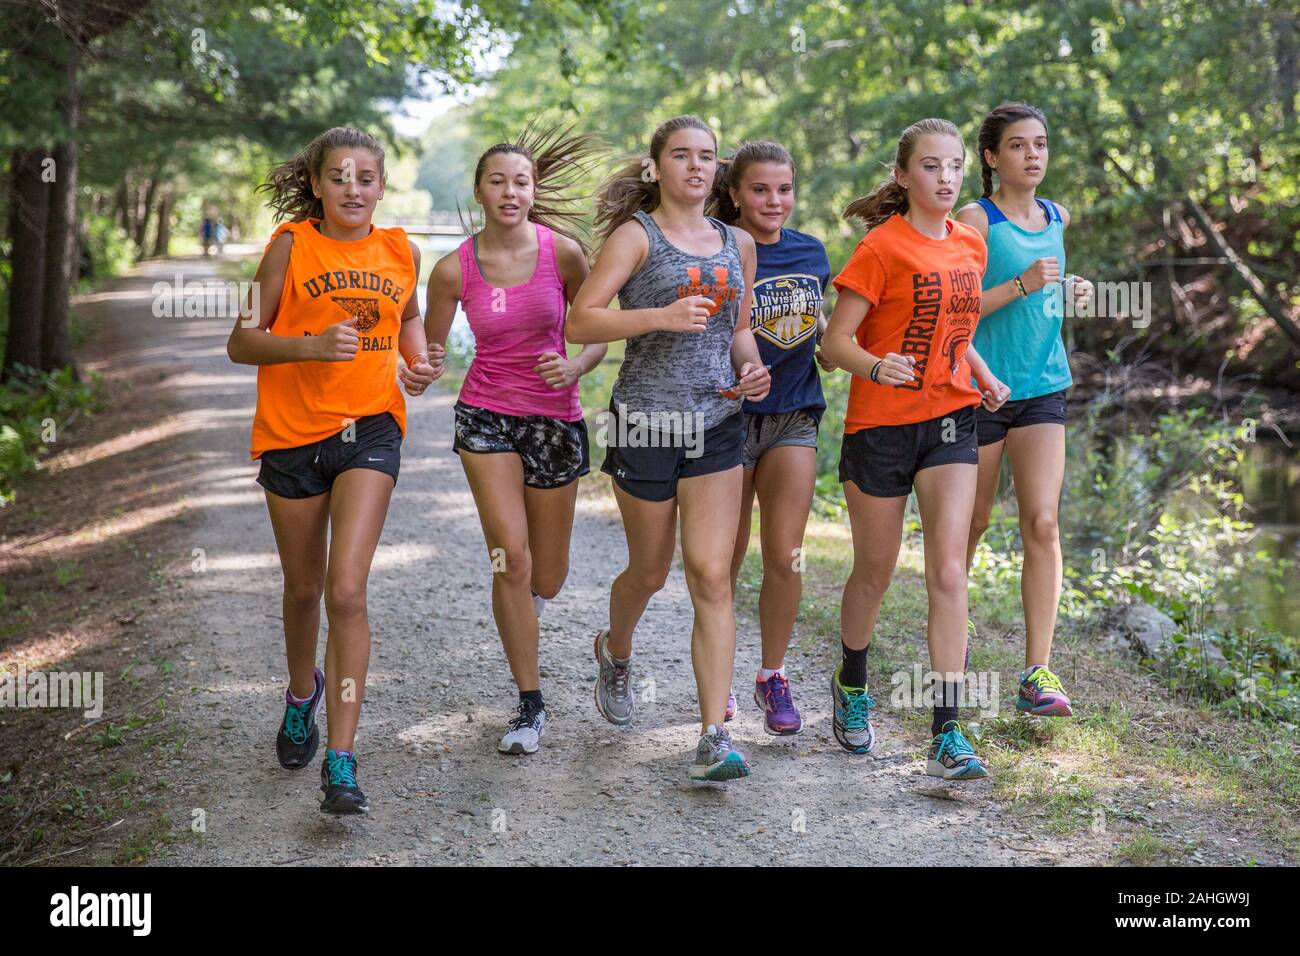 A group of girls running for exercise Stock Photo - Alamy